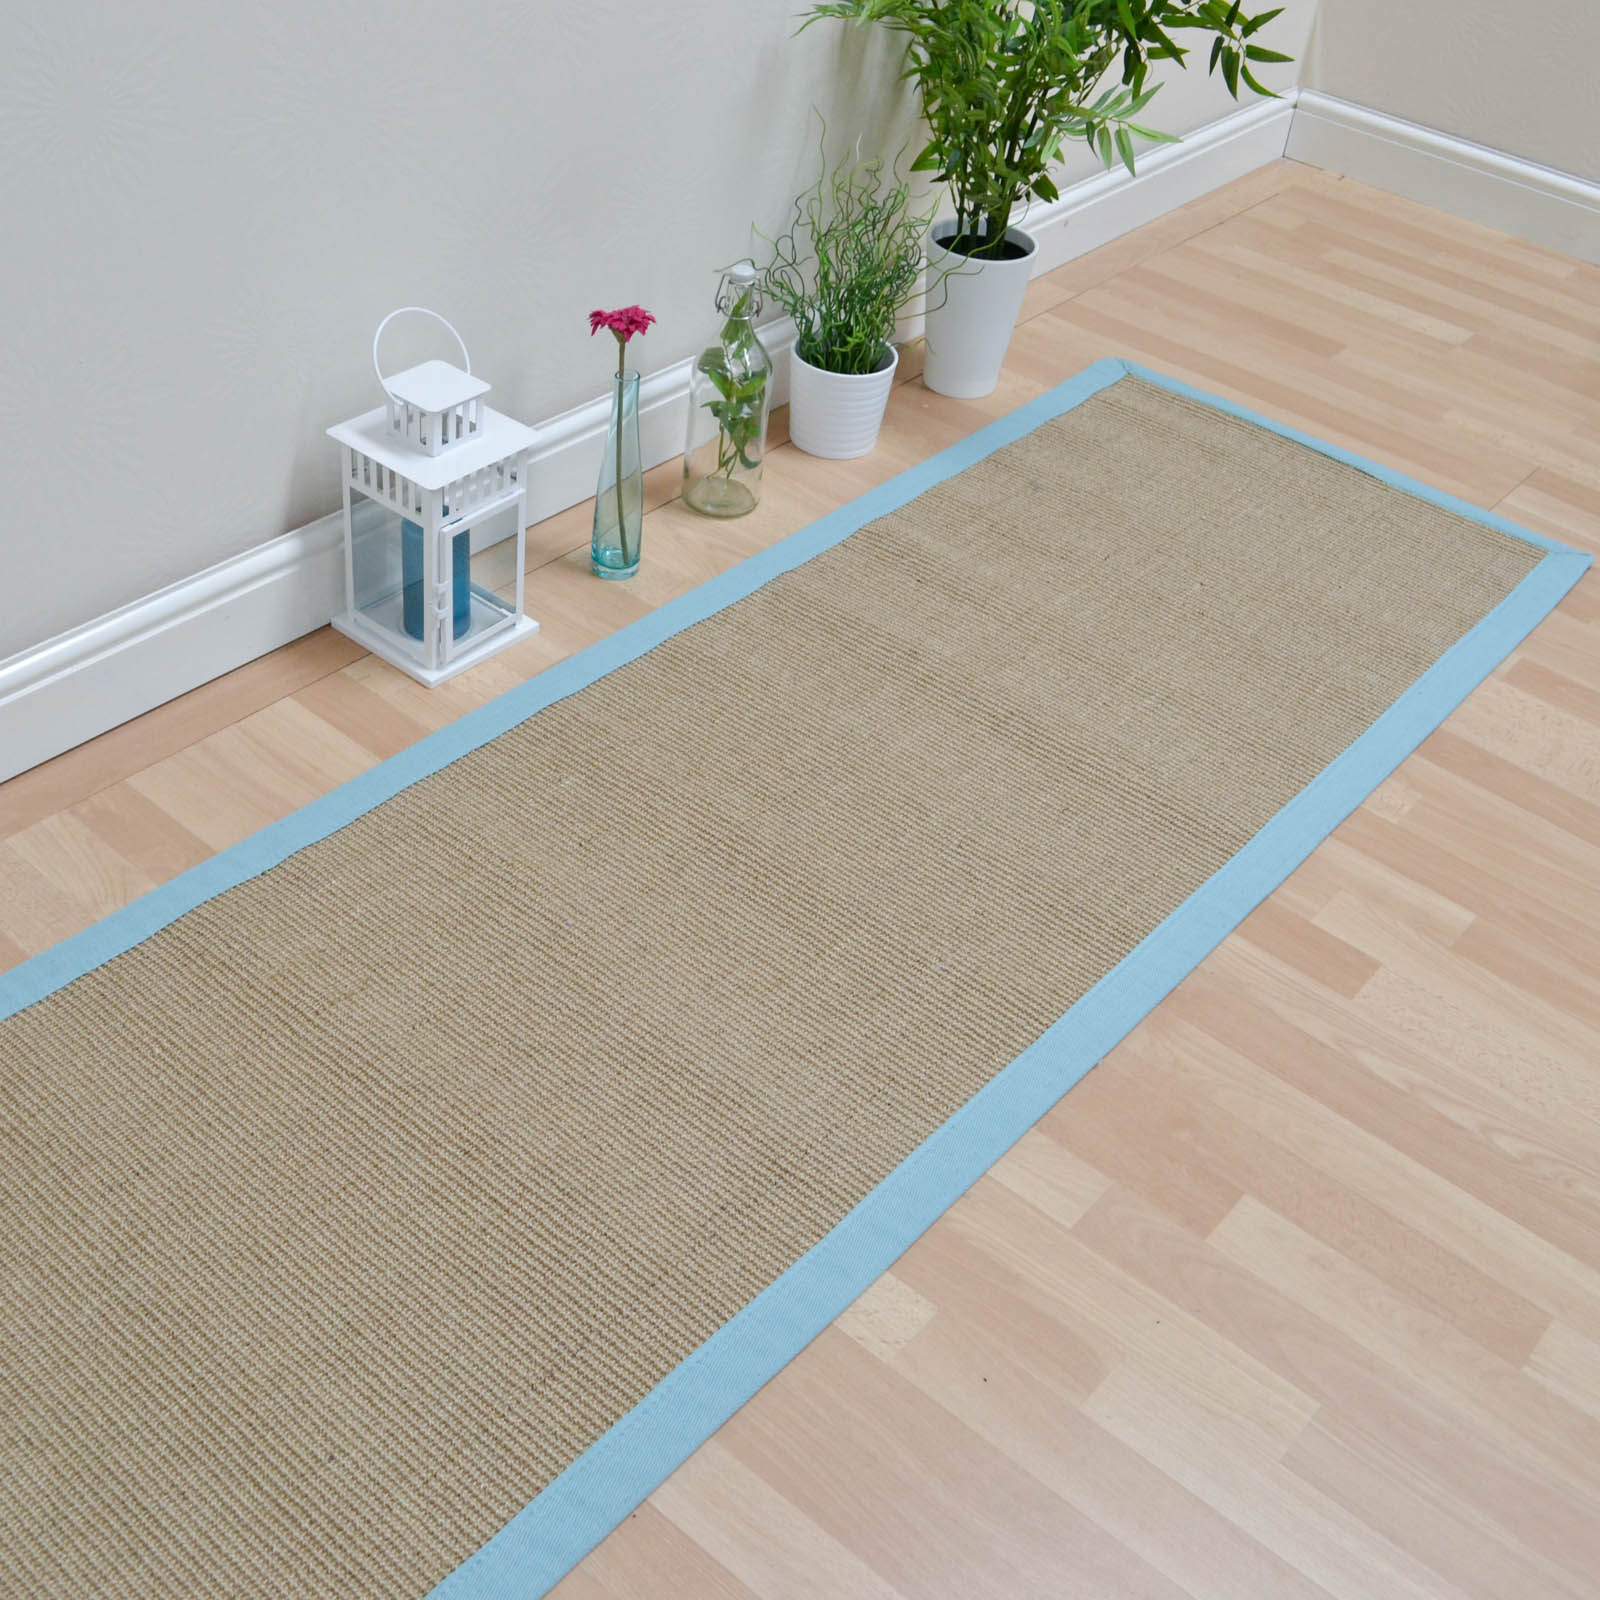 Sisal Hallway Runners in Linen with an Aqua Border